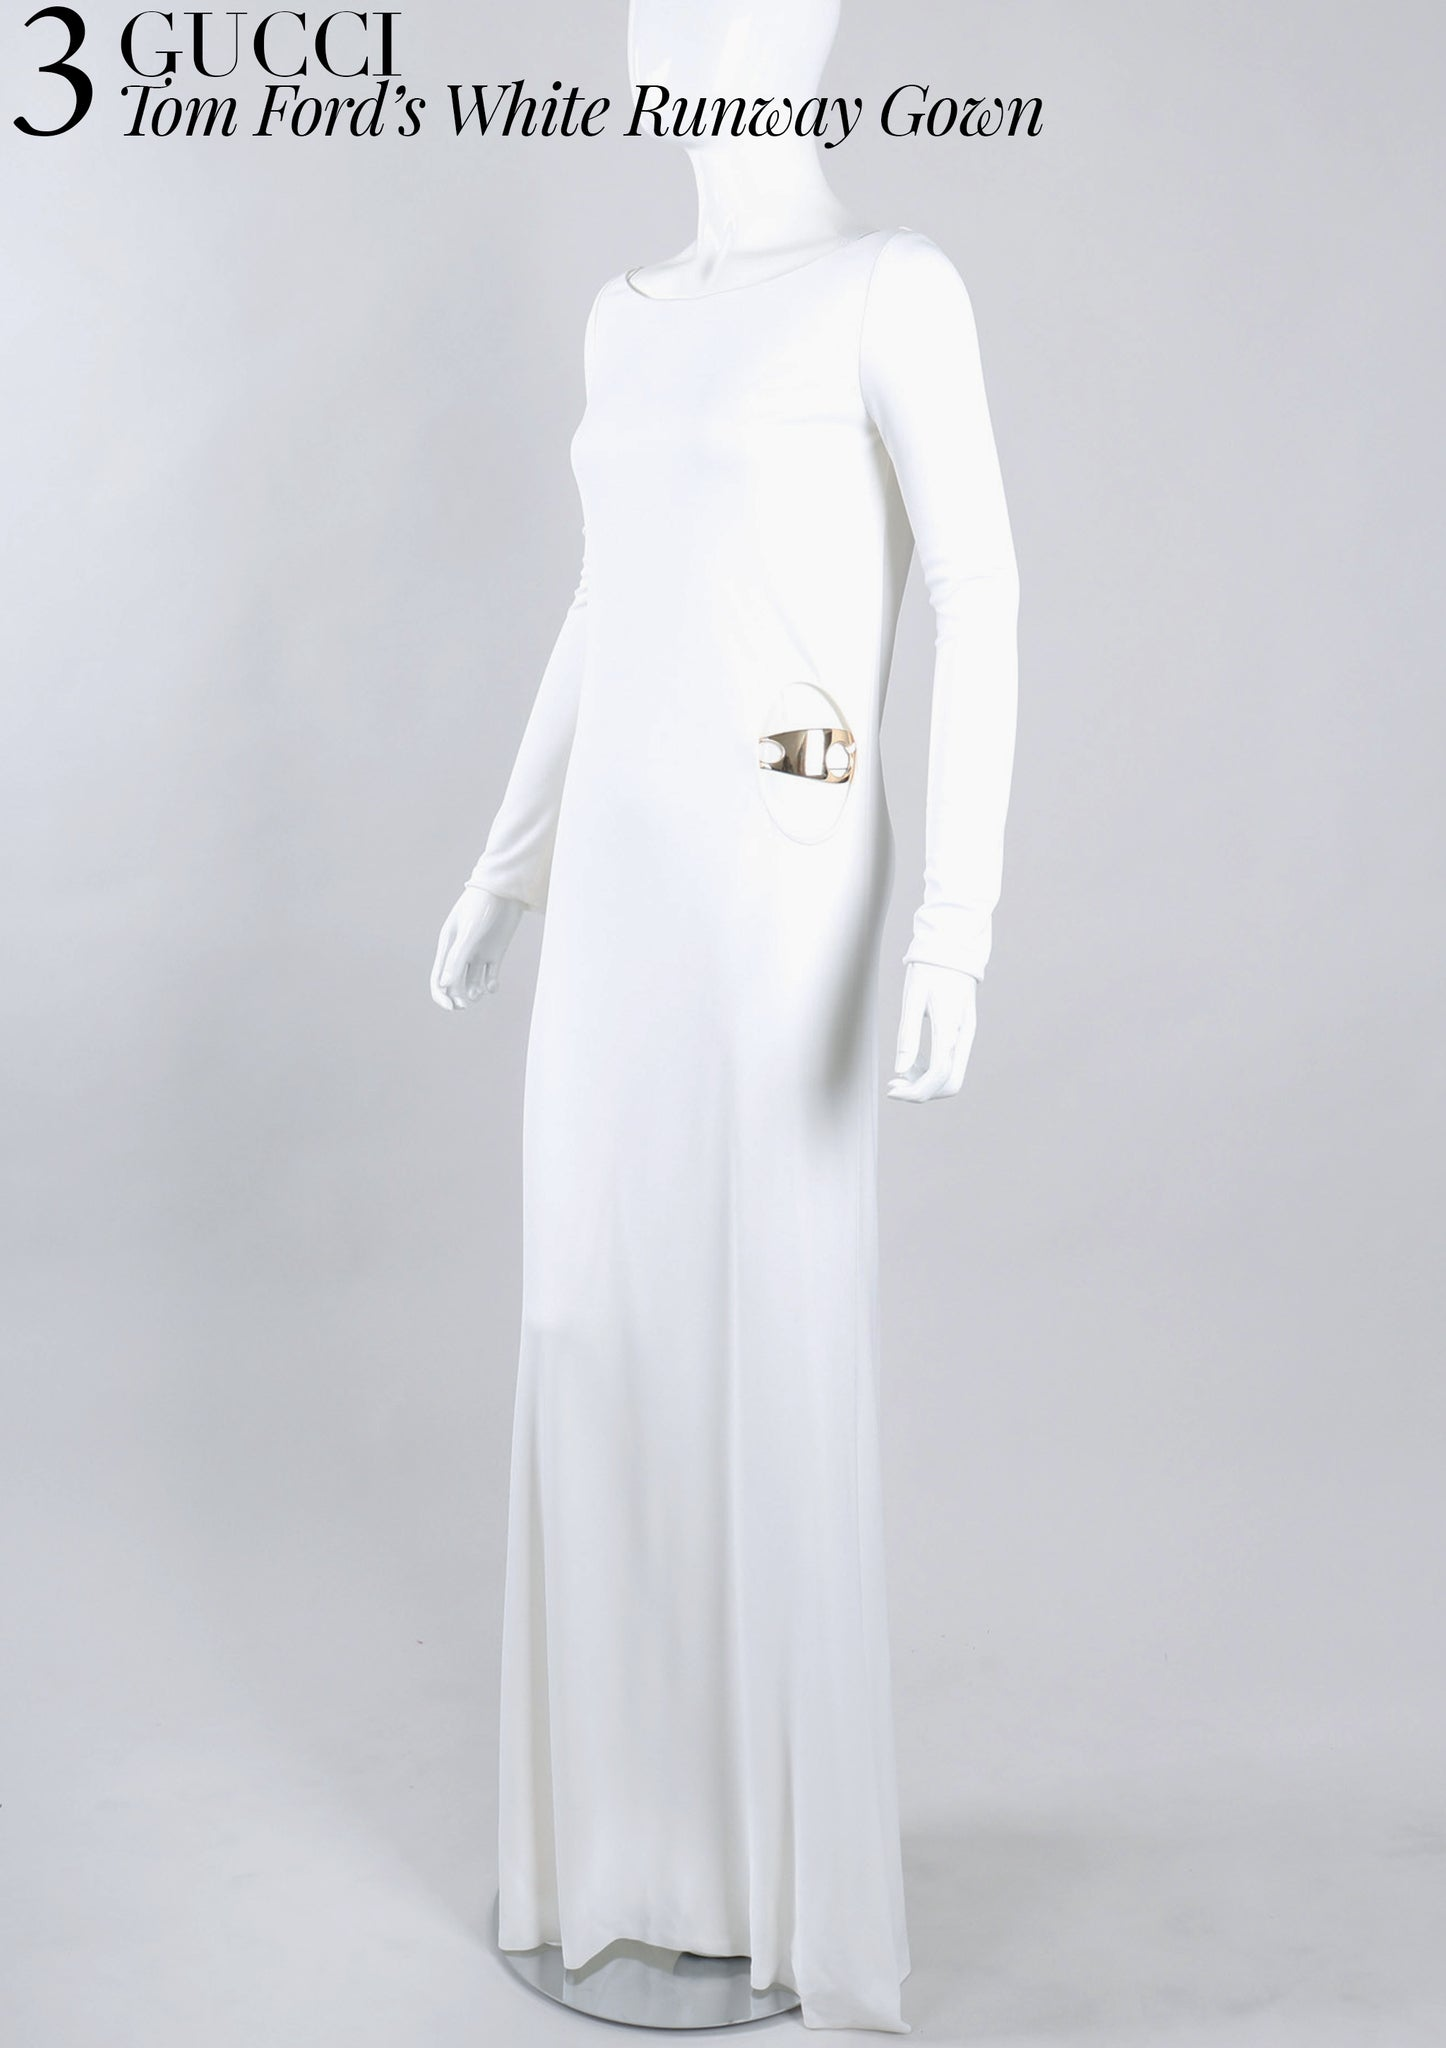 RECESS Los Angeles Vintage Dress Code Statement Piece Major Player Gucci Tom Ford 1996 Runway White Gown Jersey Cutout